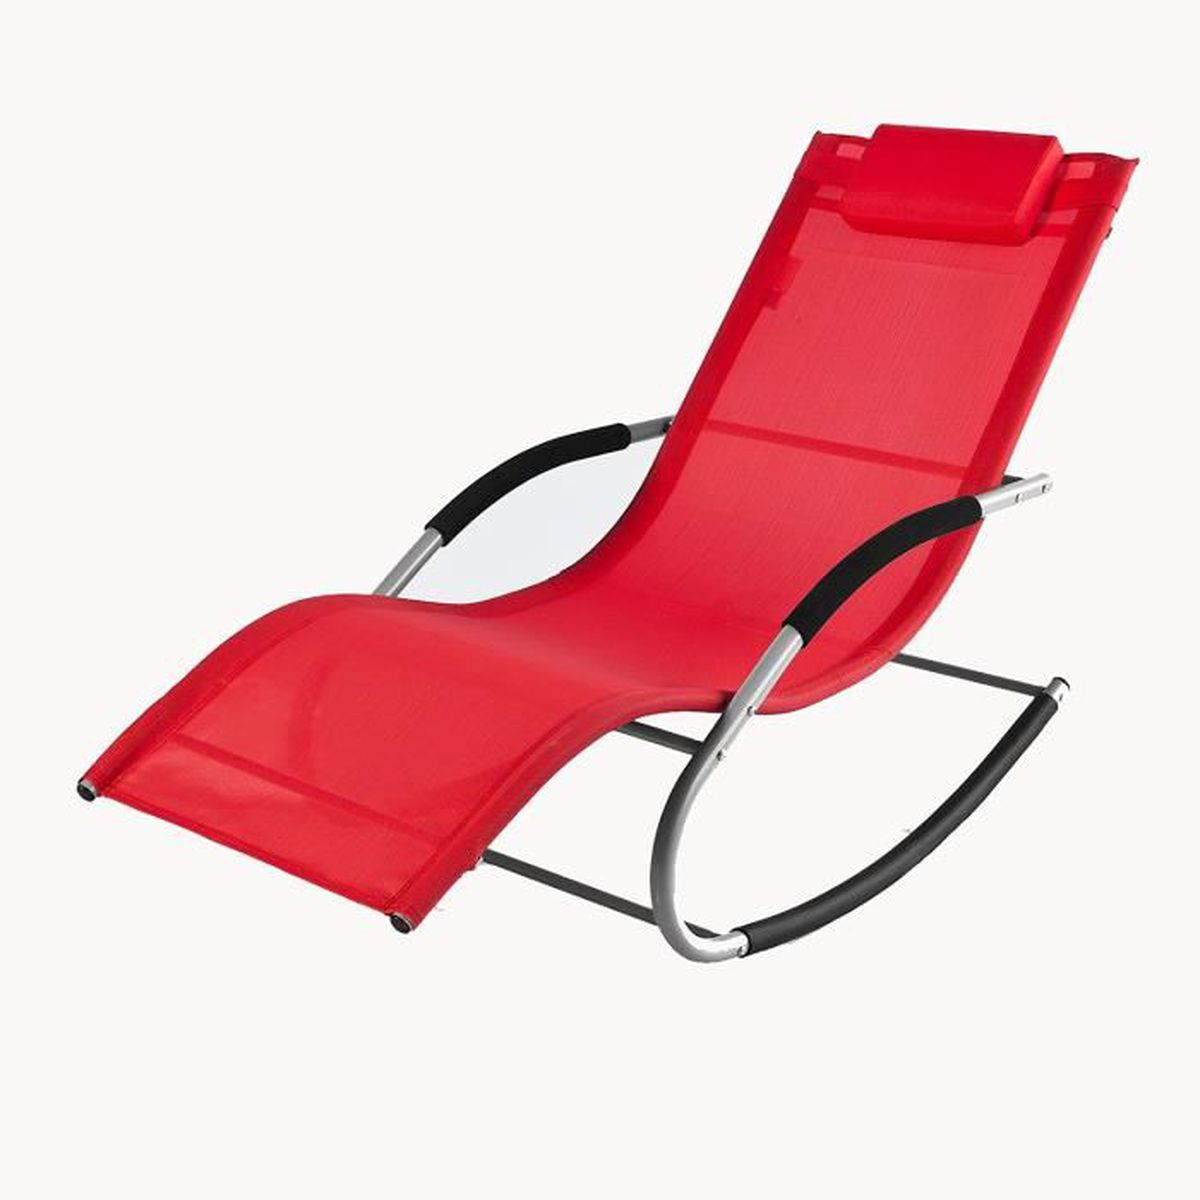 Transat a bascule rocking chair rouge jardin - Achat / Vente chaise ...